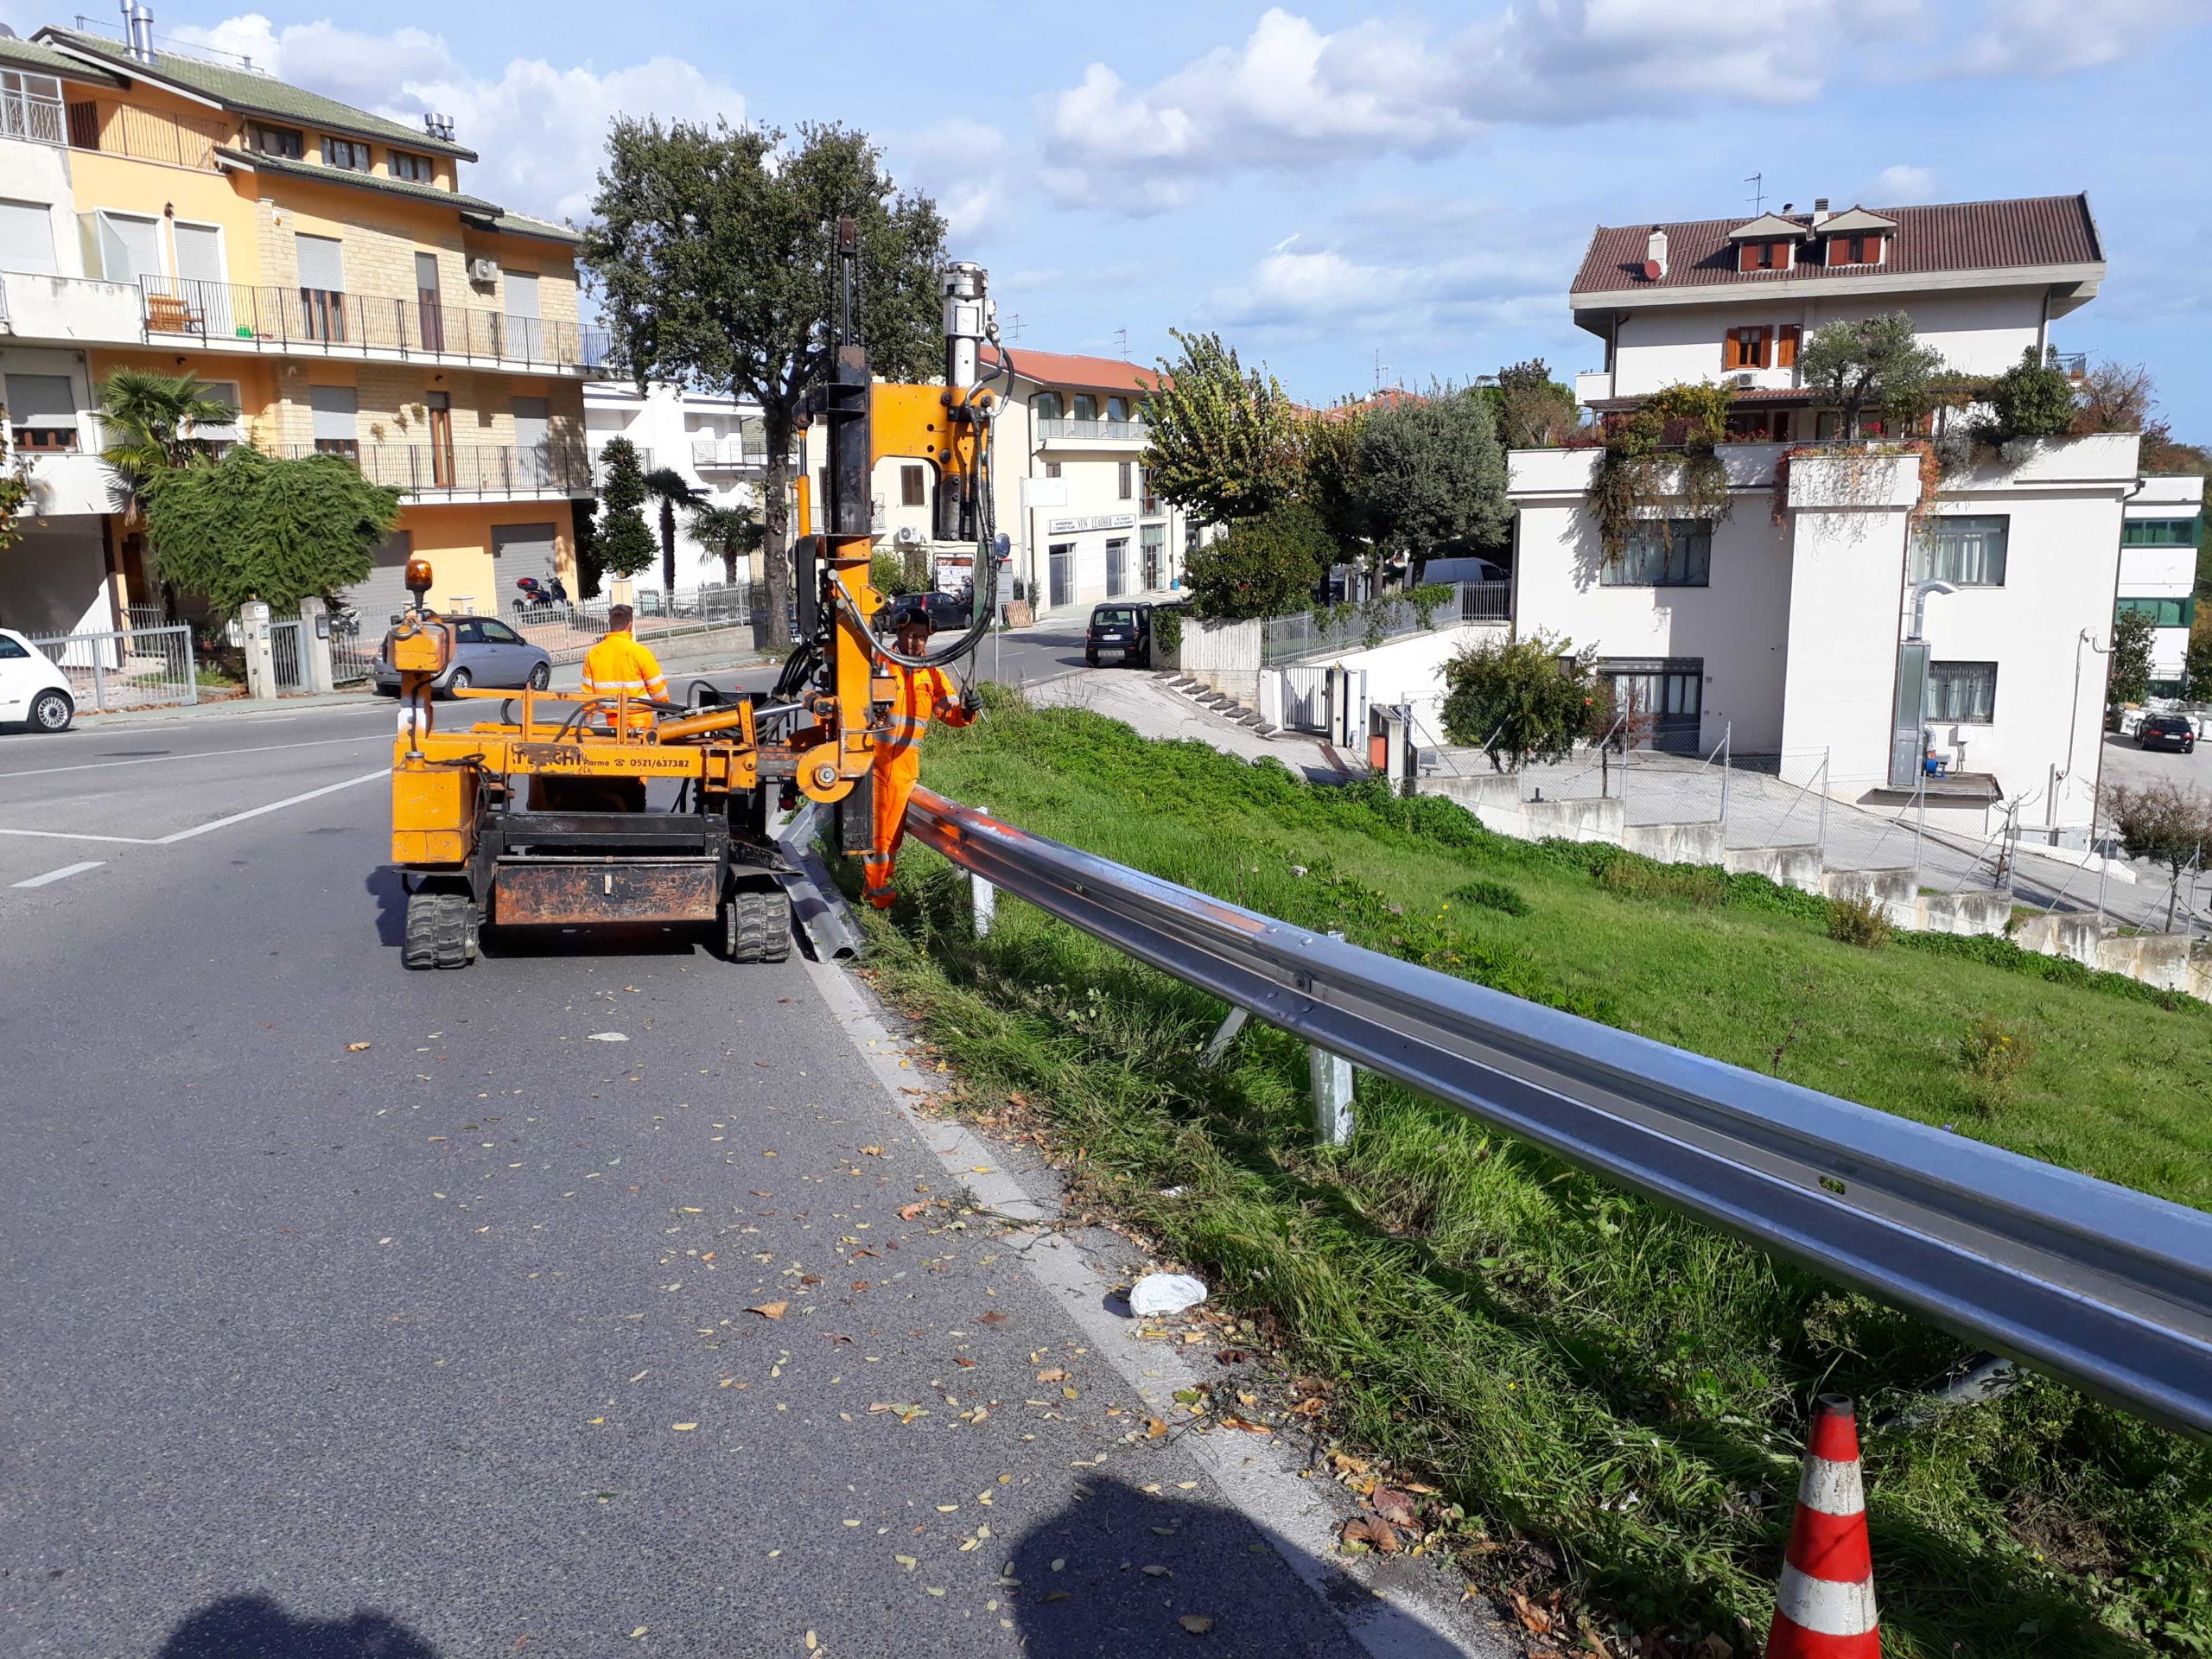 Ripristino stradale post incidente Montegranaro (Fermo)